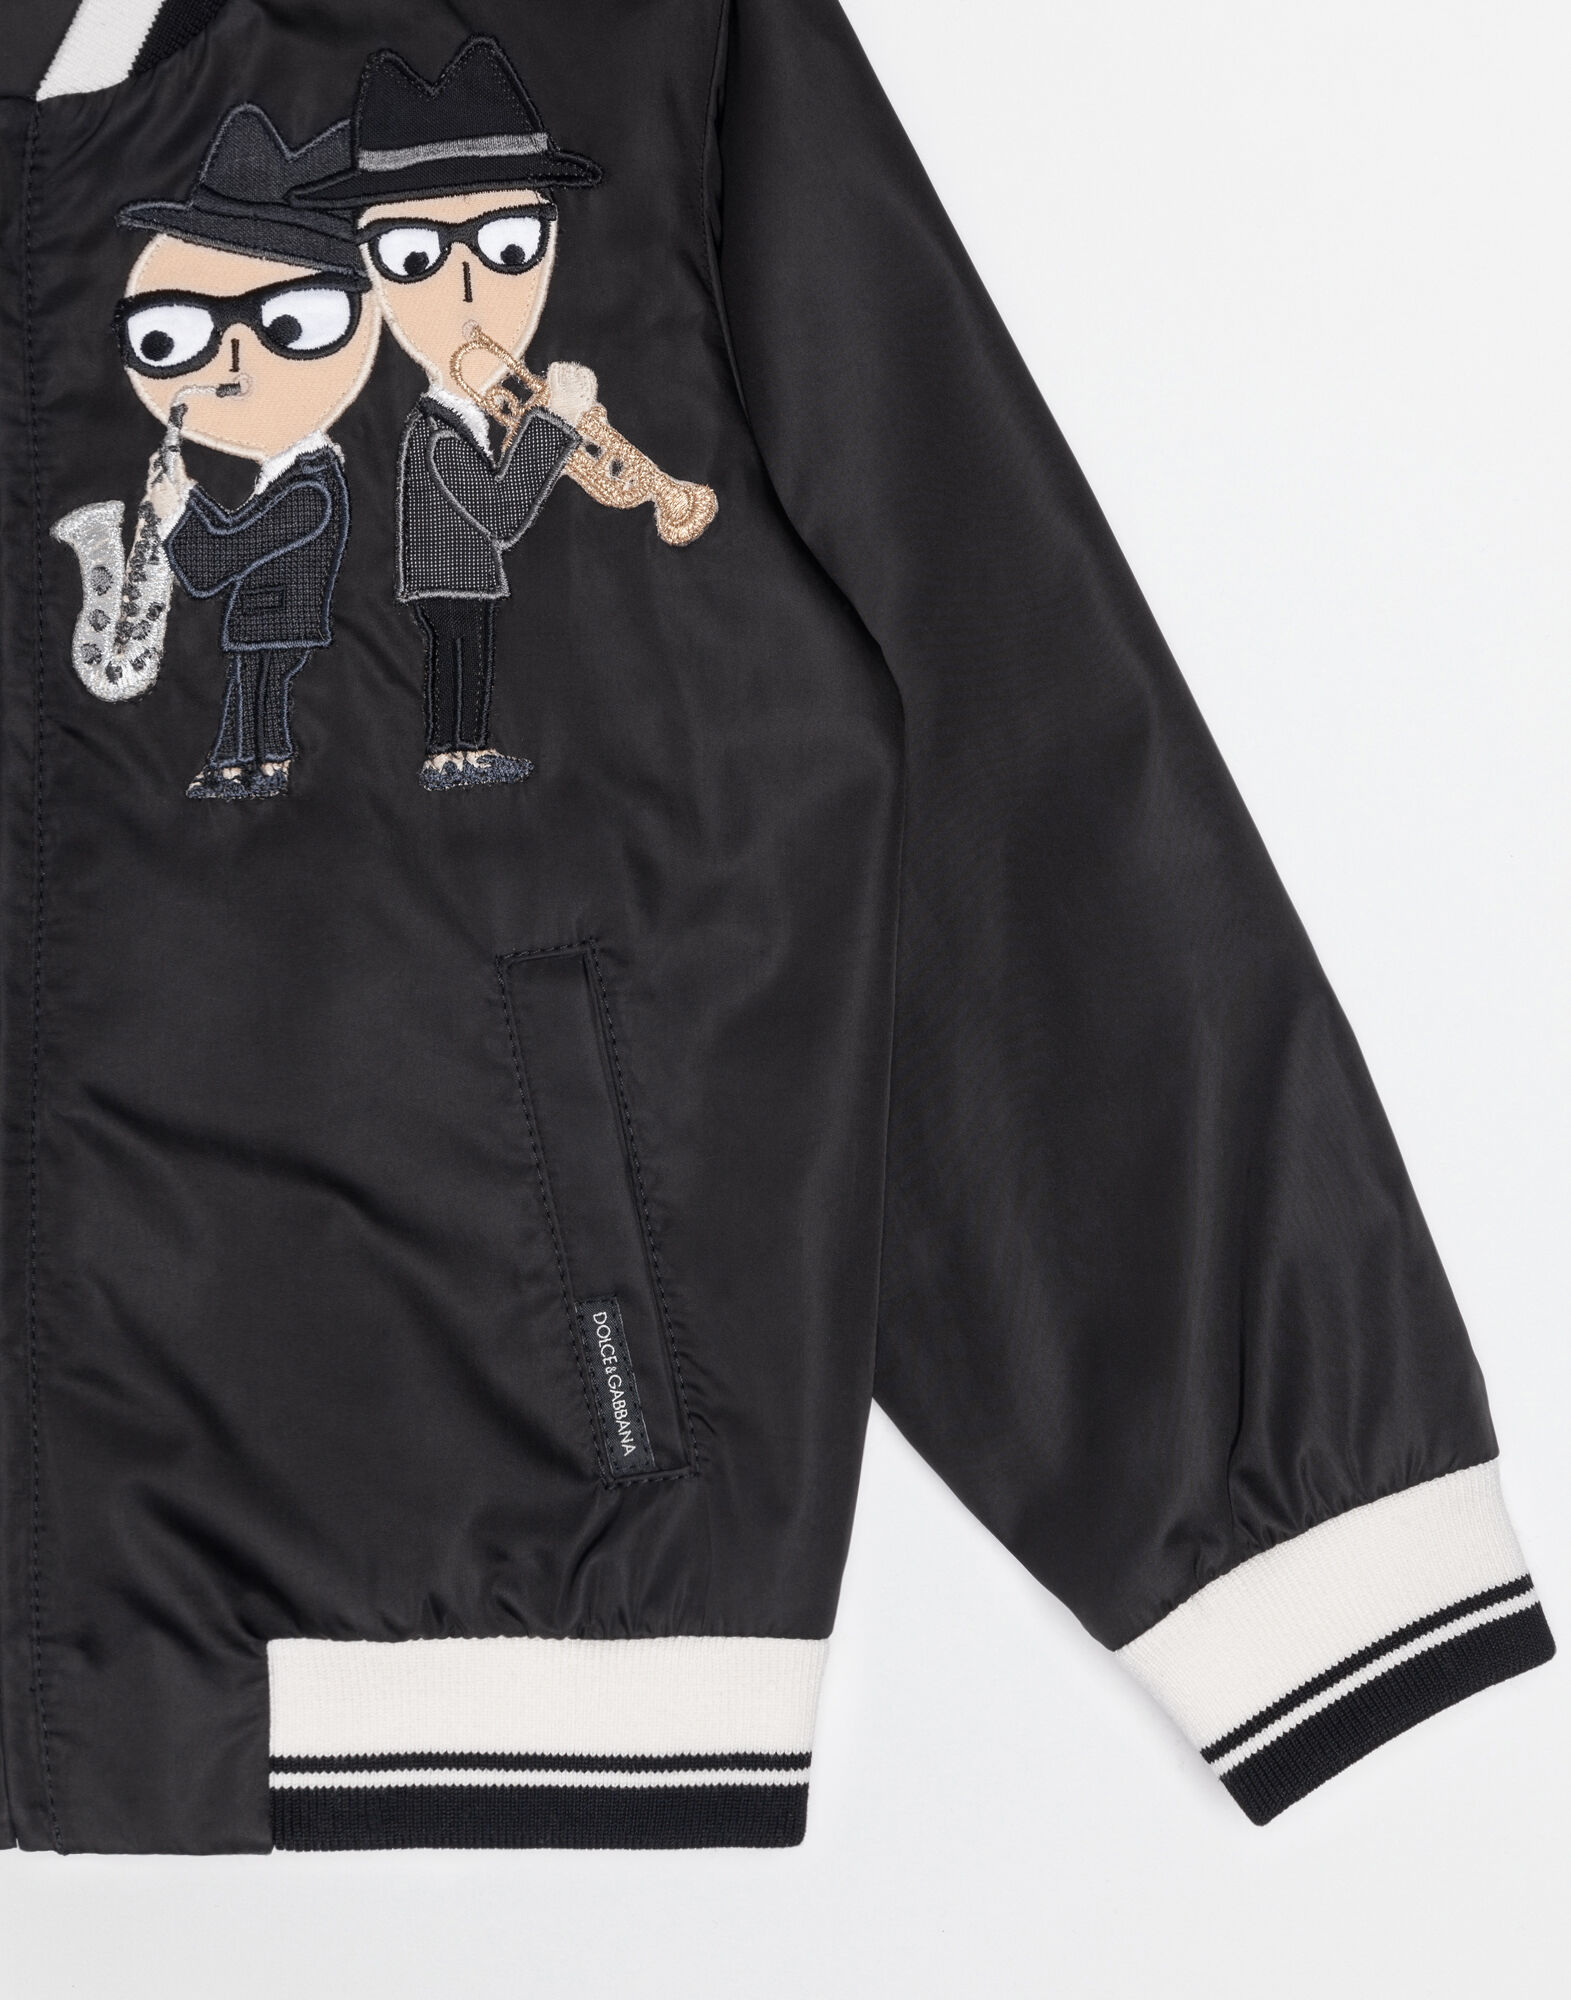 NYLON BOMBER JACKET WITH PATCHES OF THE DESIGNERS